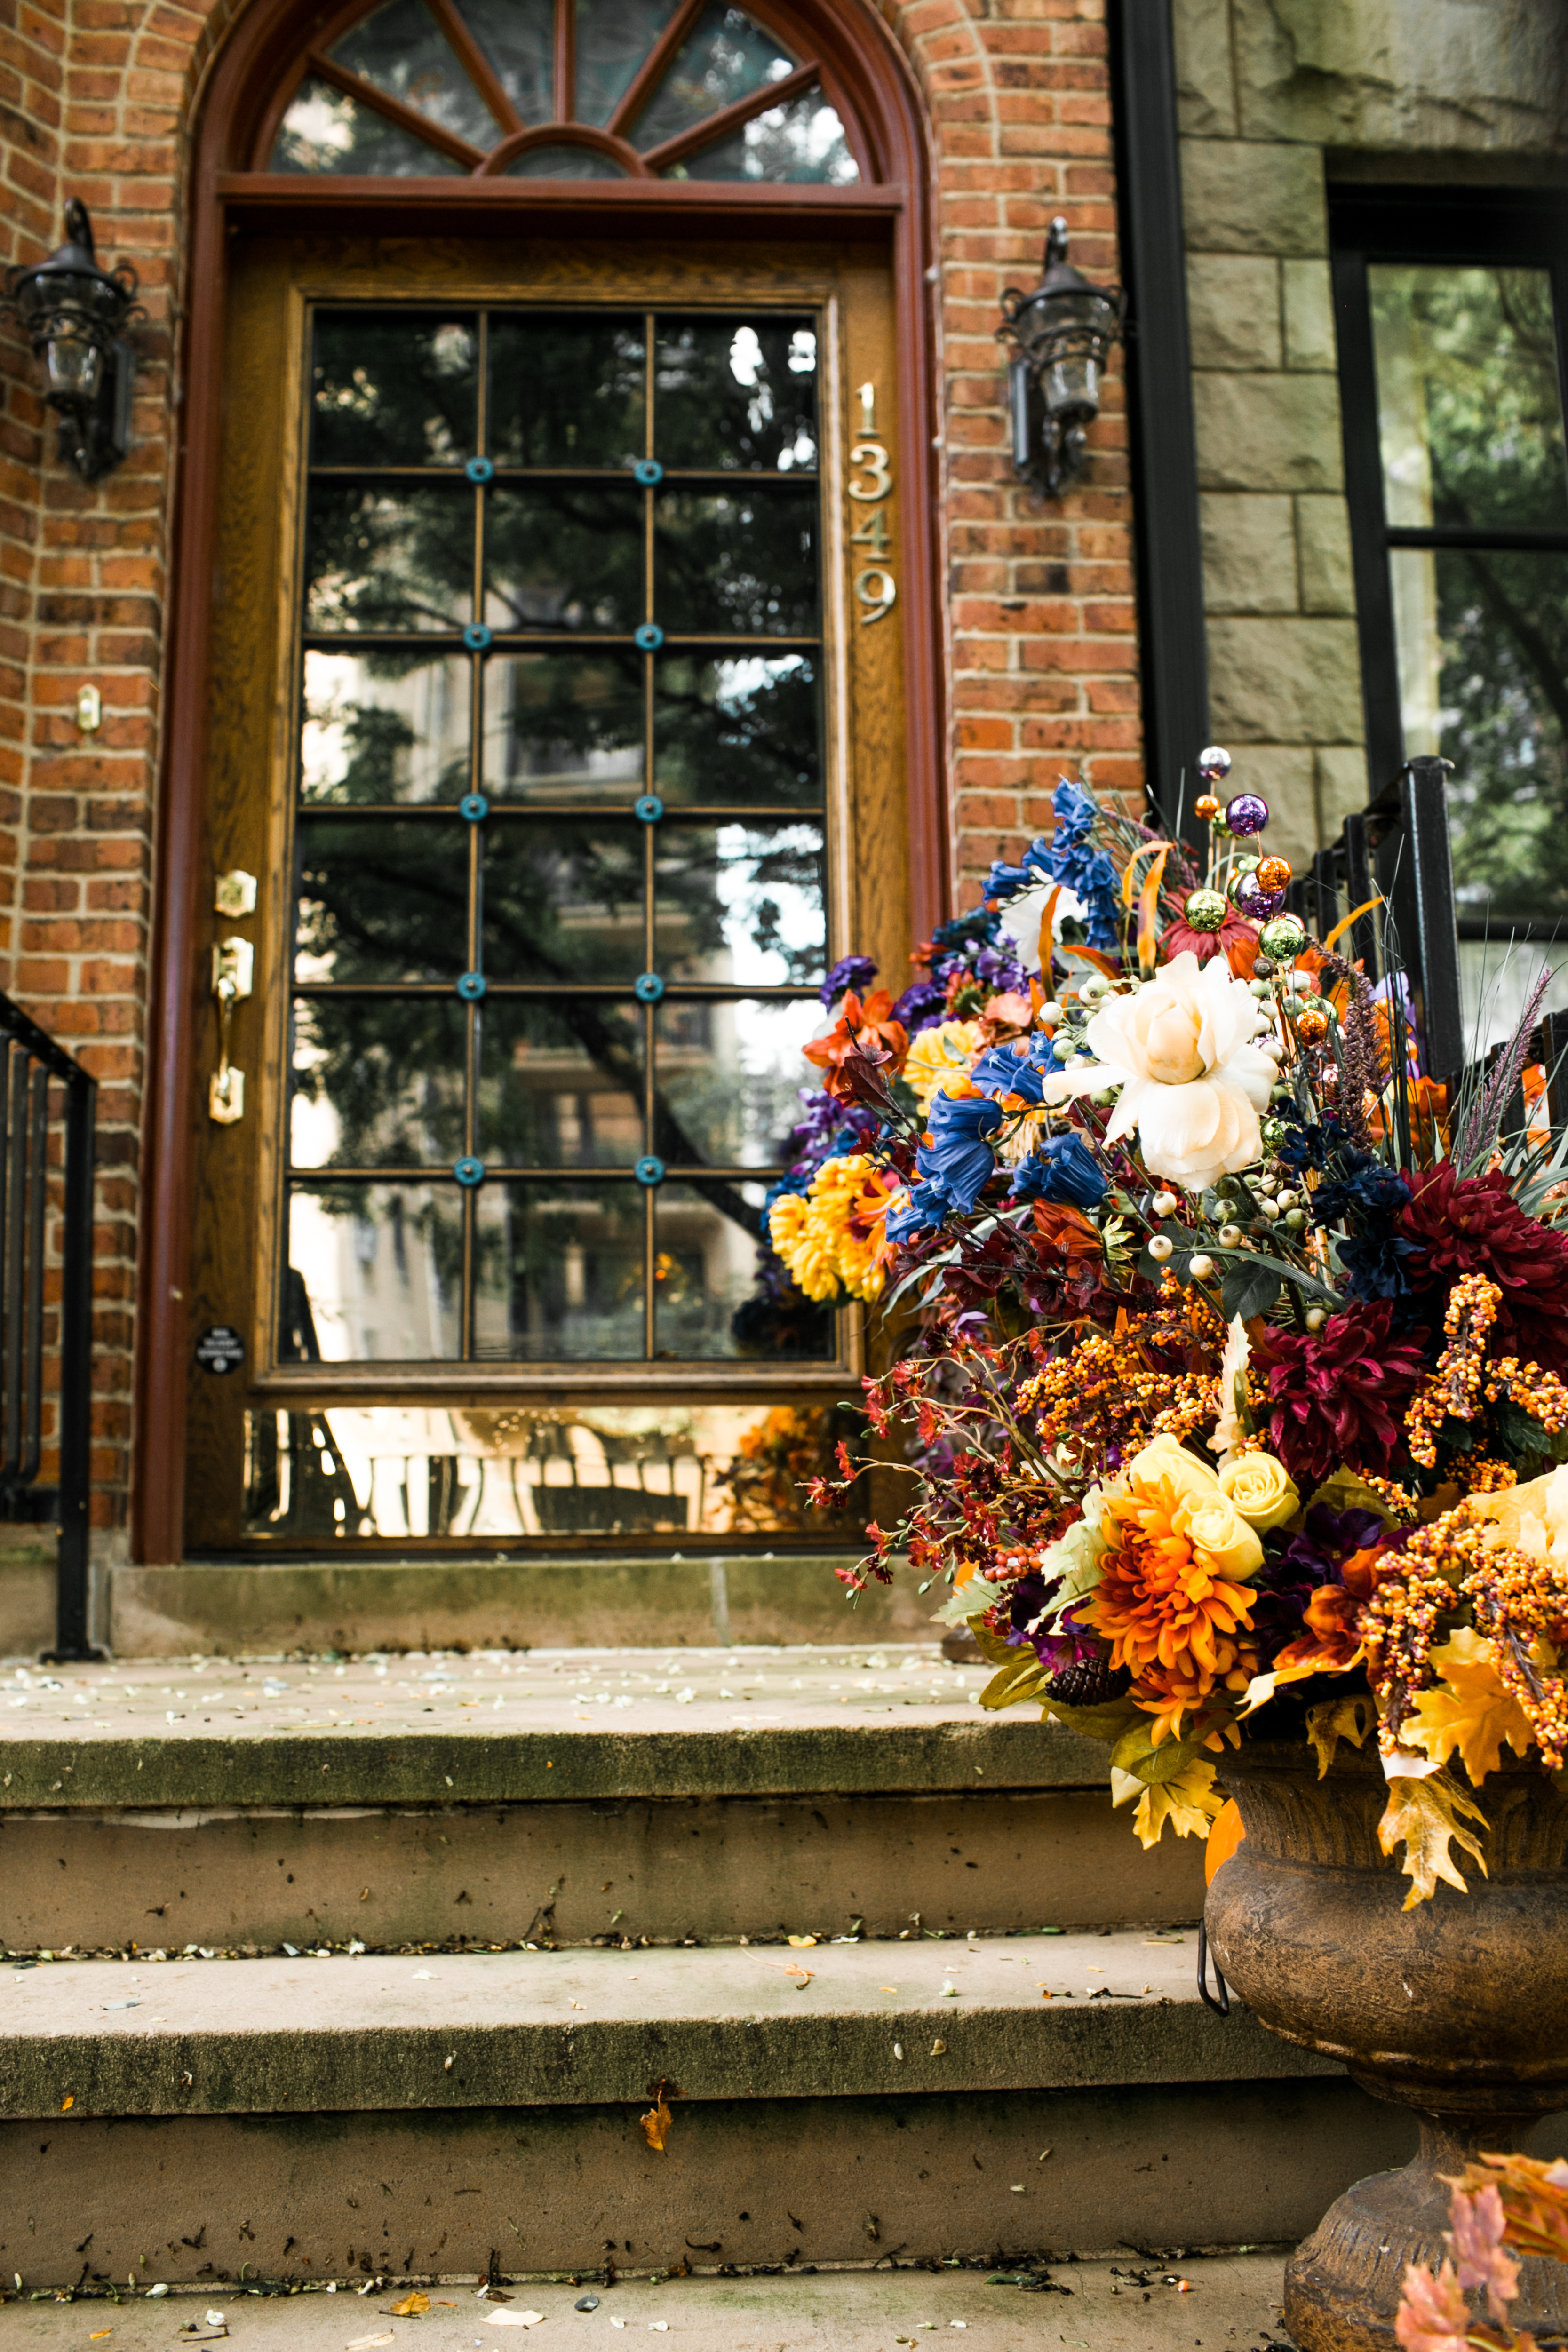 Stunning floral arrangements in the perfect fall hues.